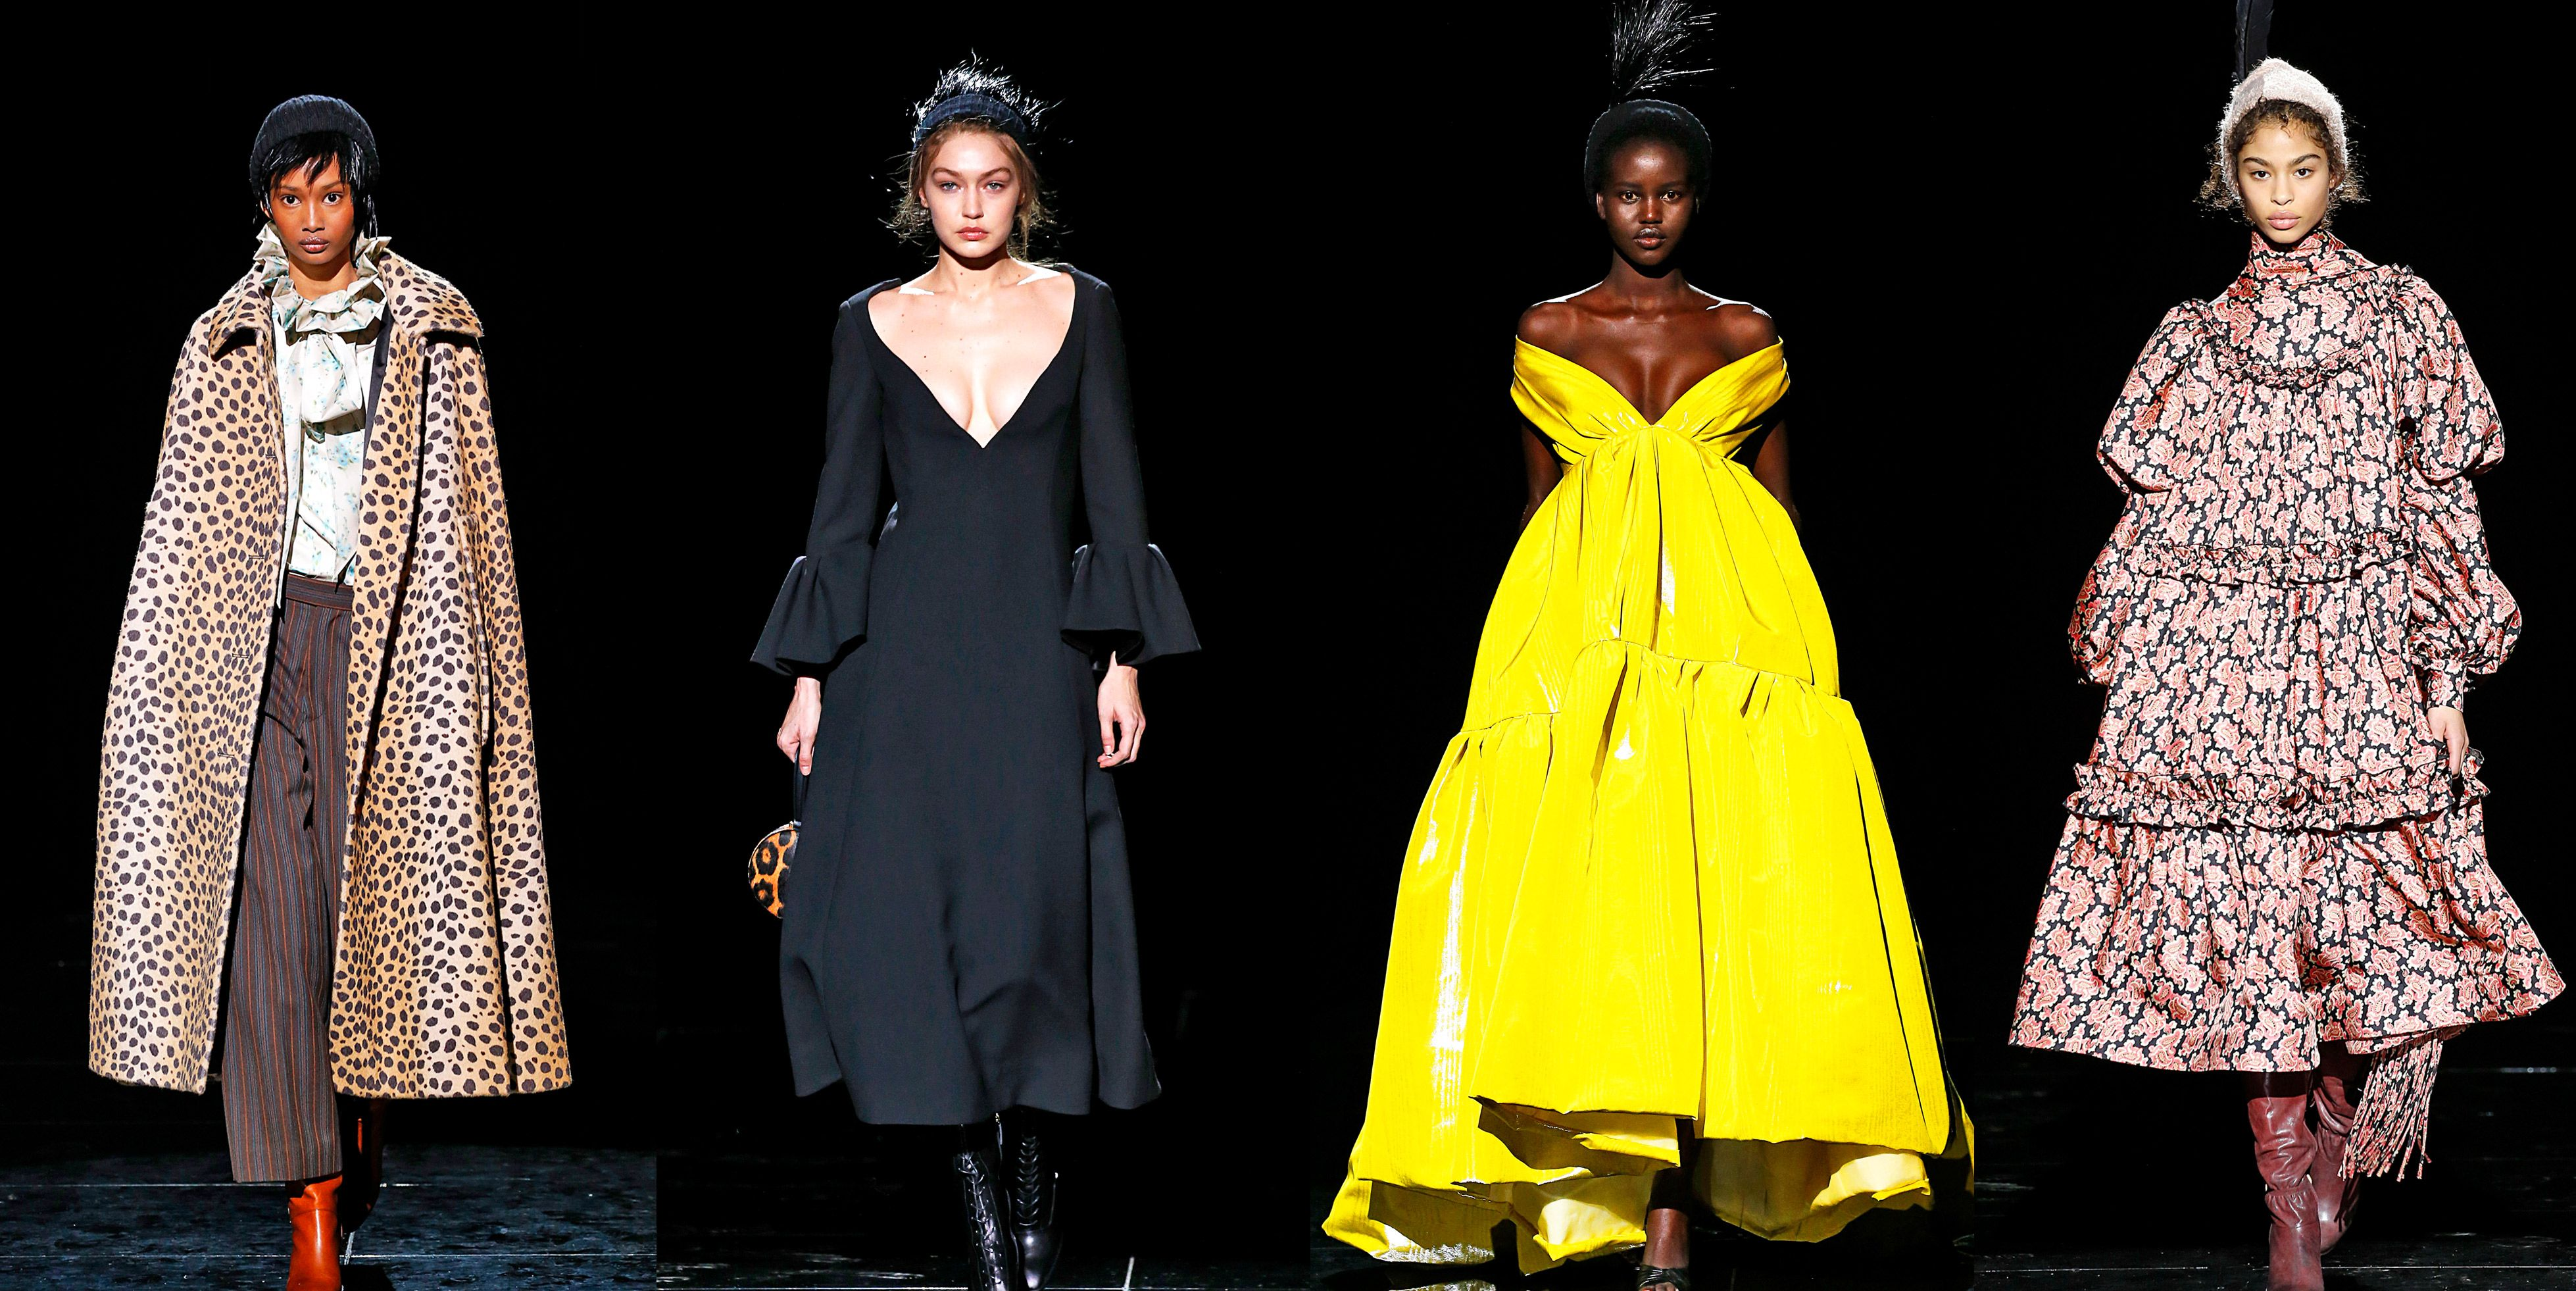 Marc Jacobs' Fall 2019 Dresses Are Perfect for Oscars Season